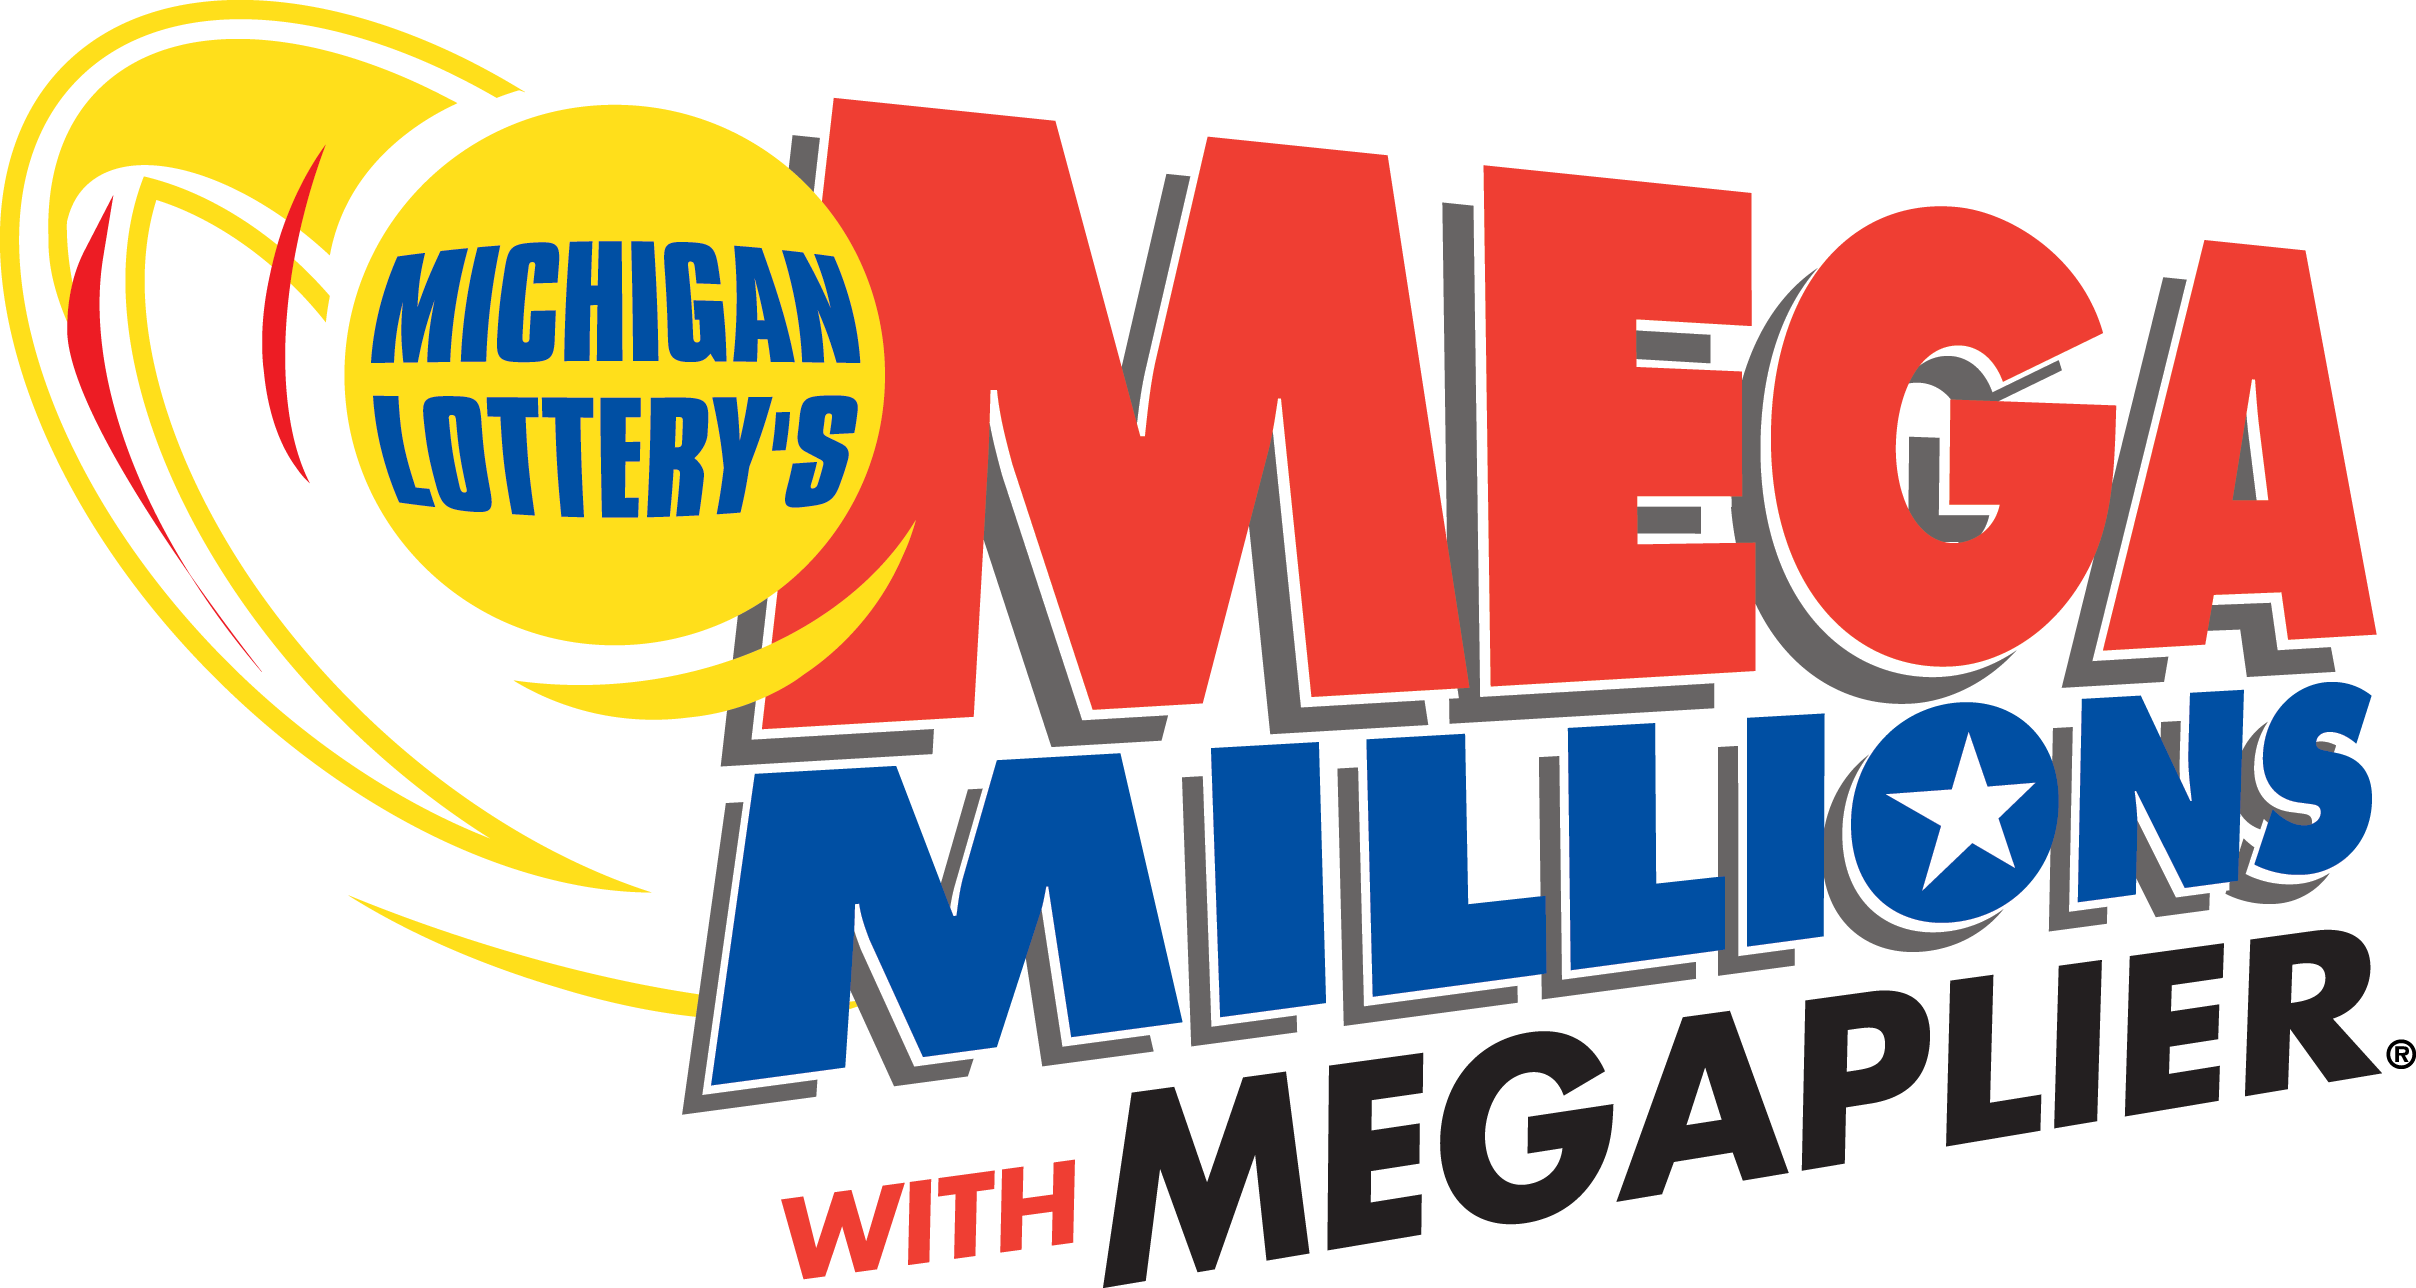 lottery 14 Mega millions draw date: winning number: megaball: megaplier: next draw date estimated jackpot: est cash option: 09/14/2018 friday 23-30-40-43-66 13.